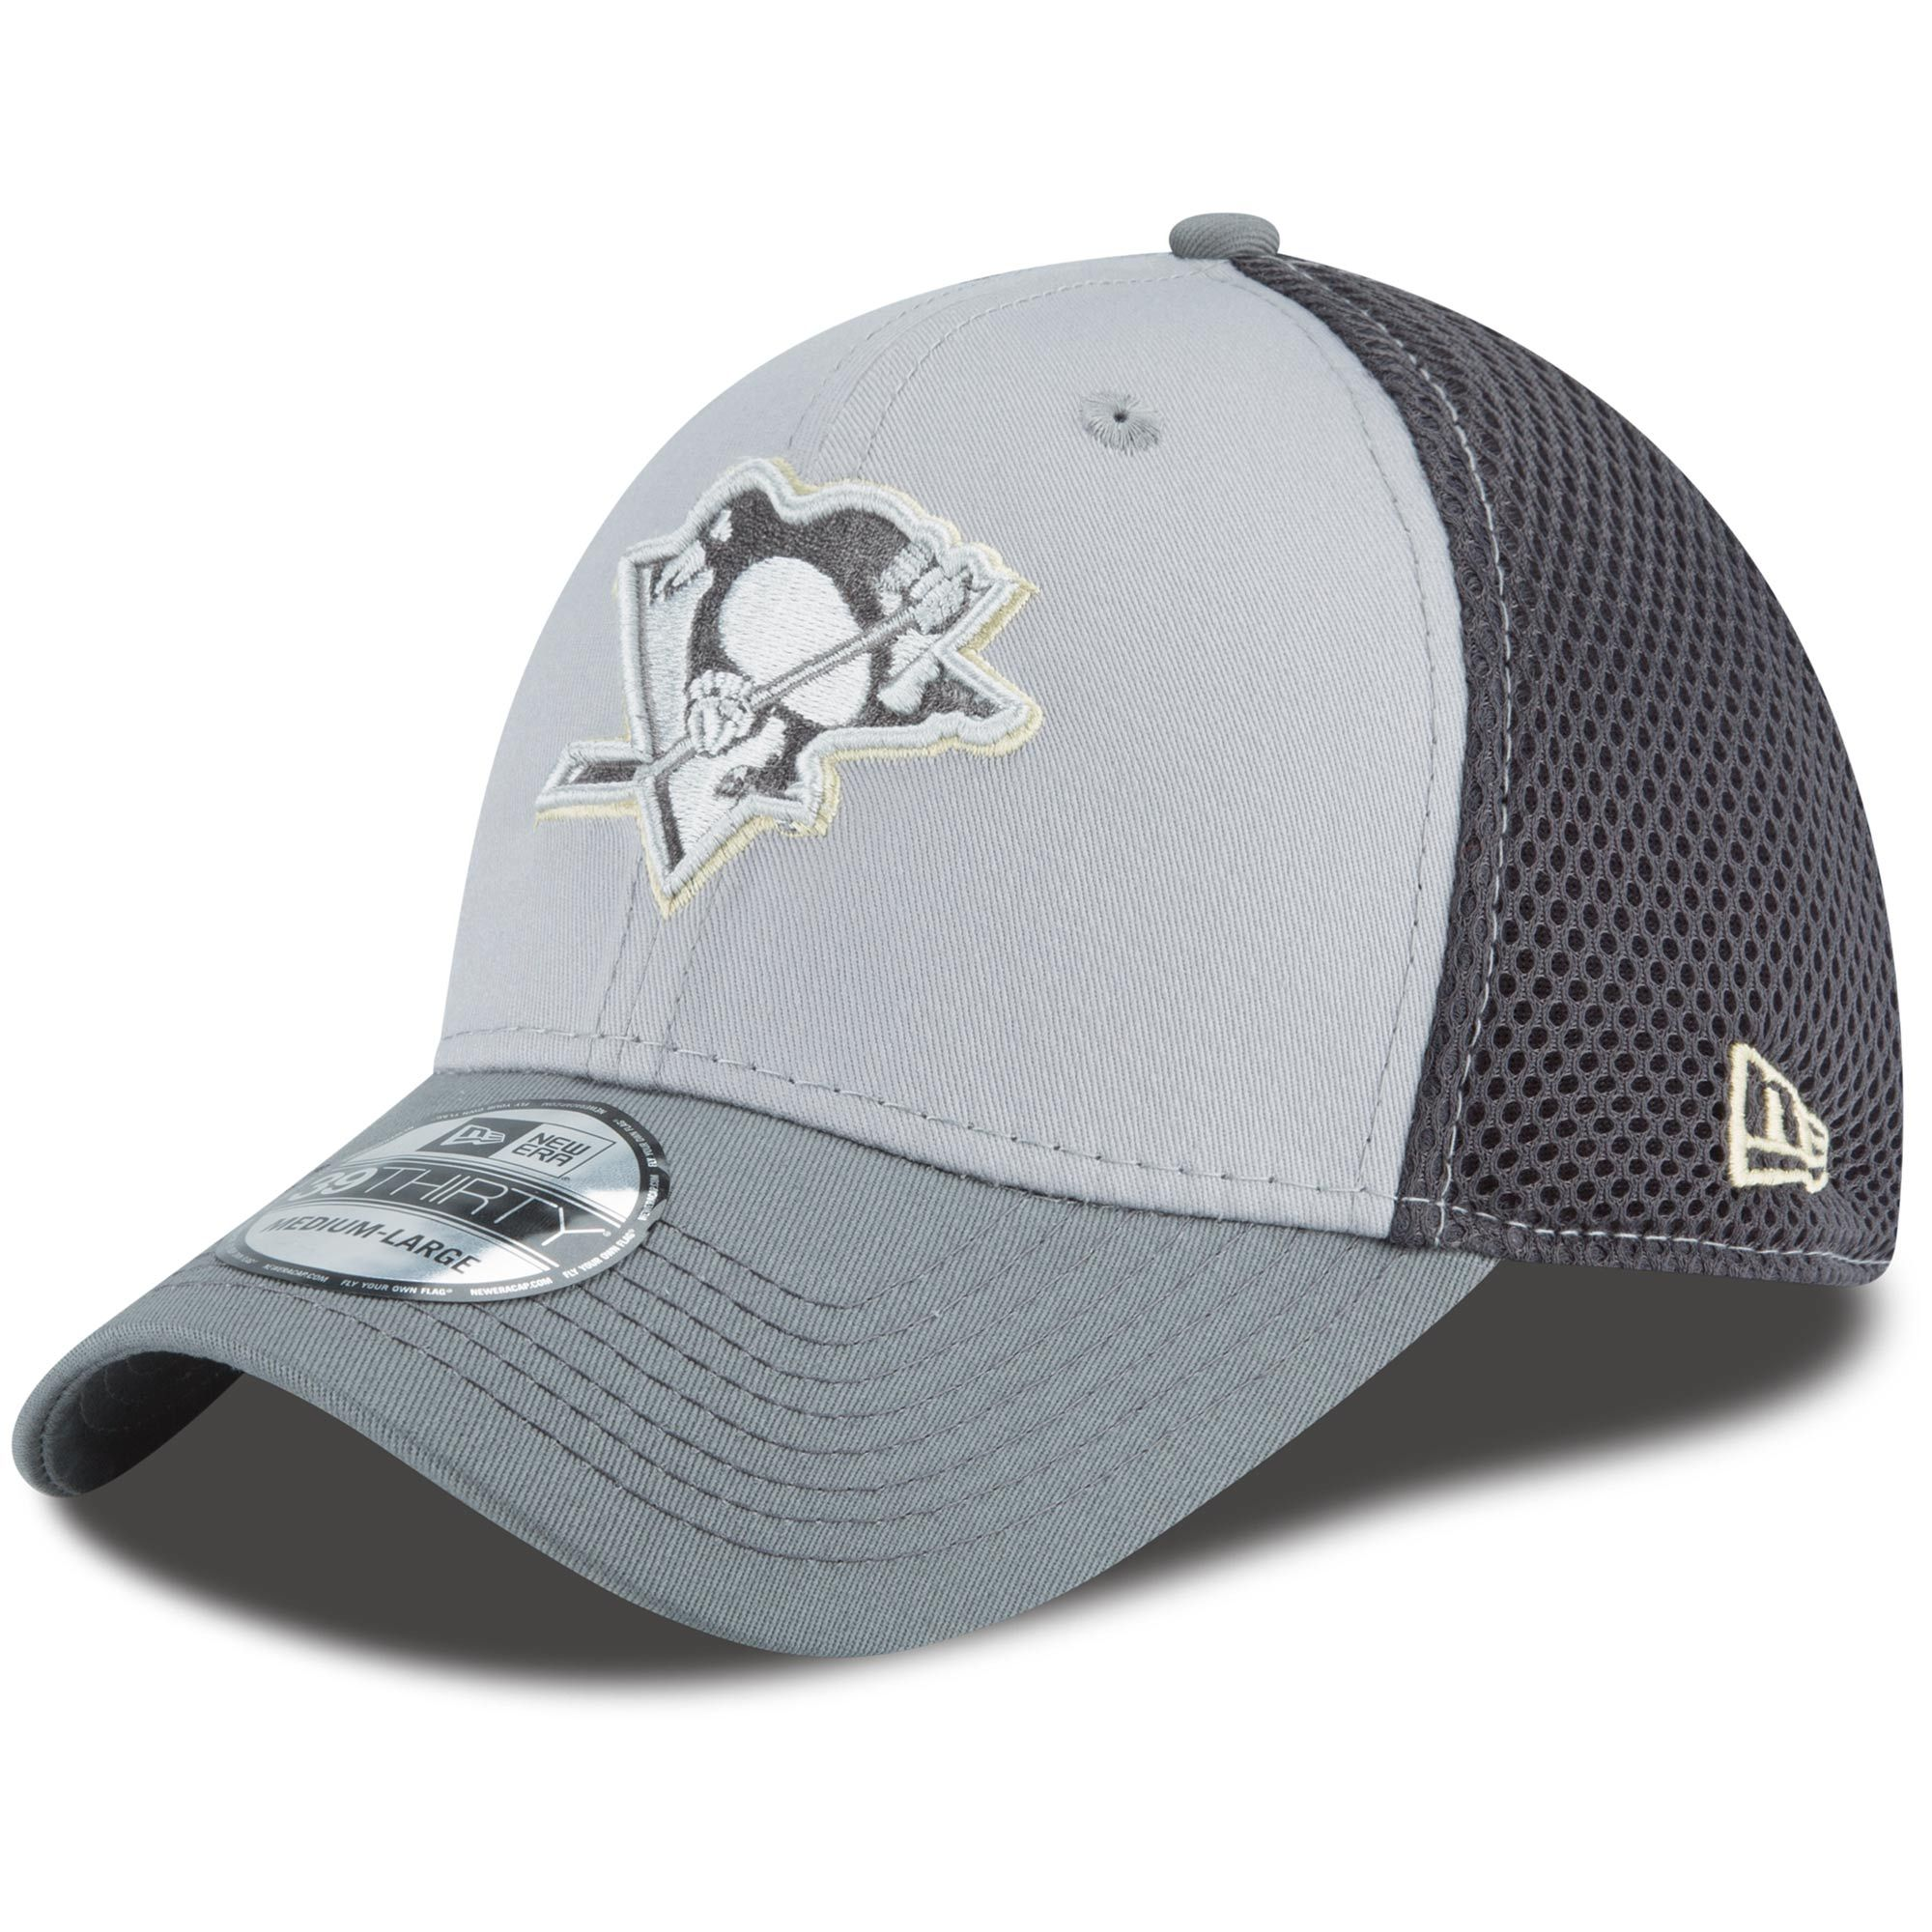 new arrivals d9d2a aa385 Pittsburgh Penguins New Era Grayed Out Neo 39THIRTY Flex Hat - Gray